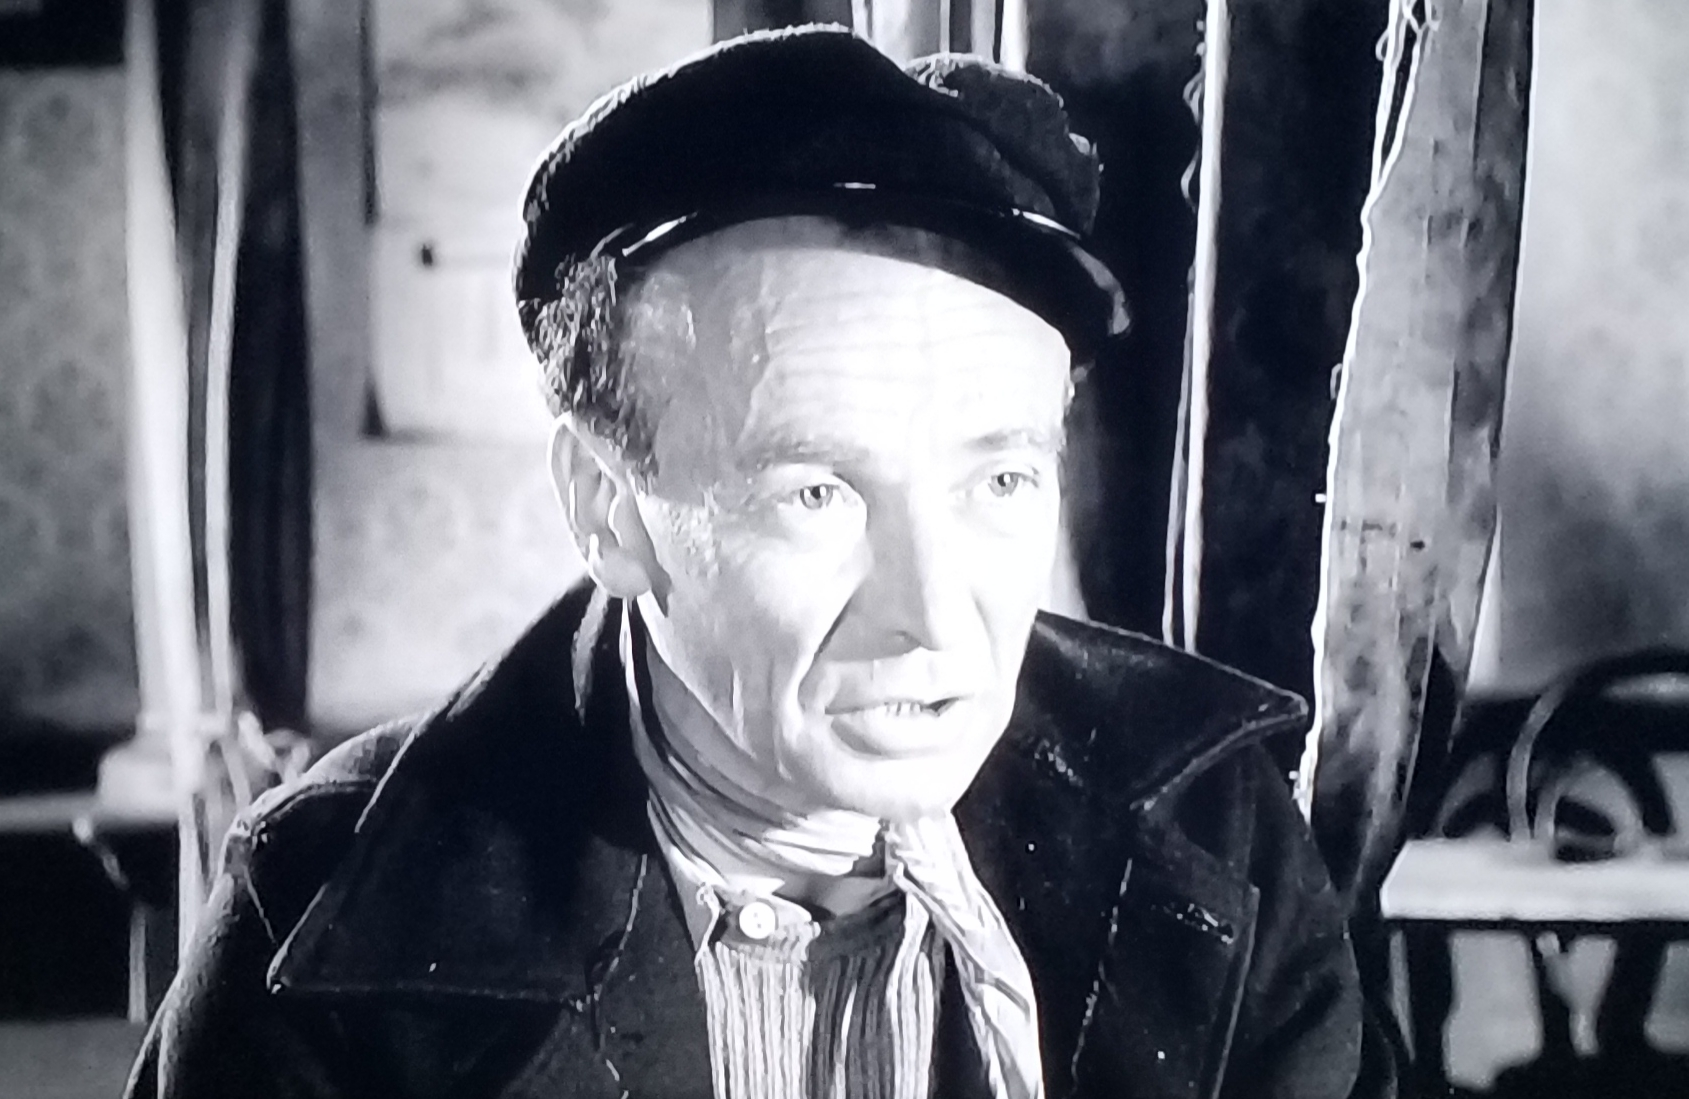 Philo Hauser in The House of the Seven Hawks (1959)